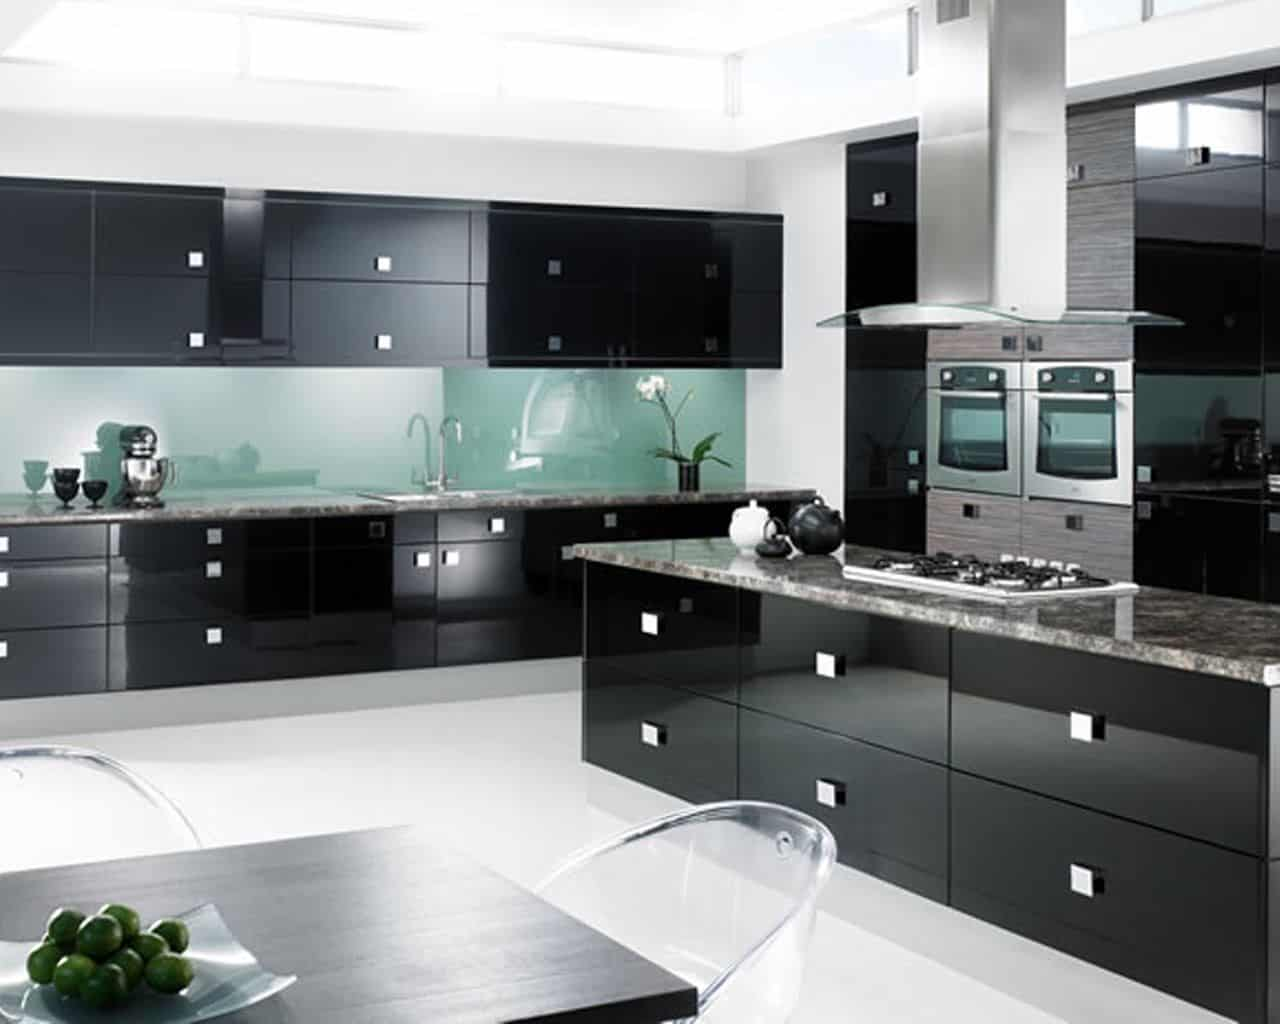 Fullsize Of Black Cabinet Kitchens